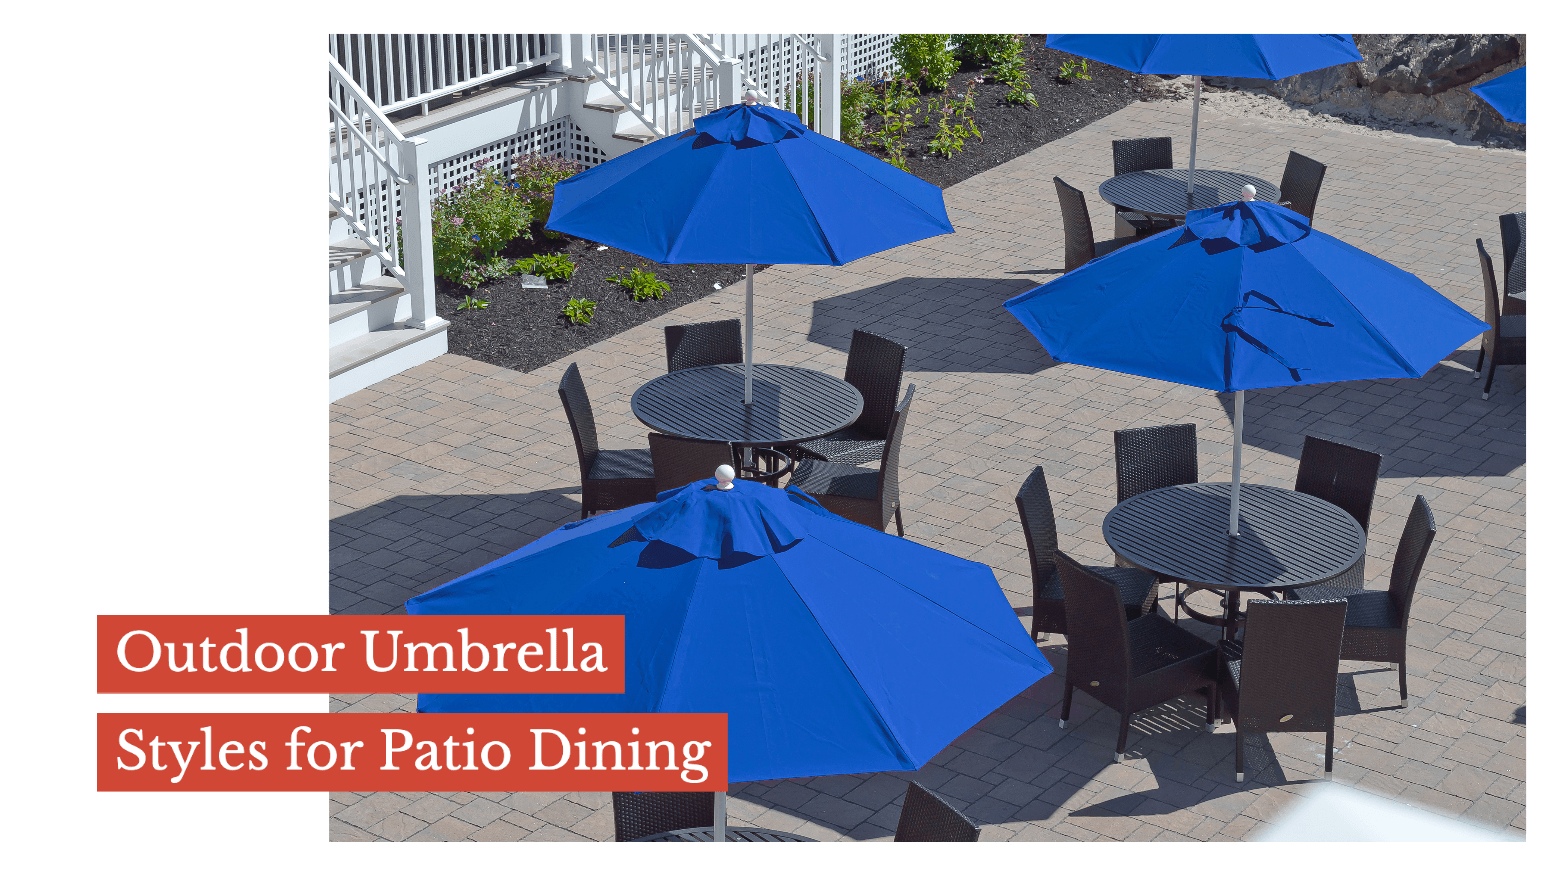 Outdoor Umbrella Styles for Patio Dining